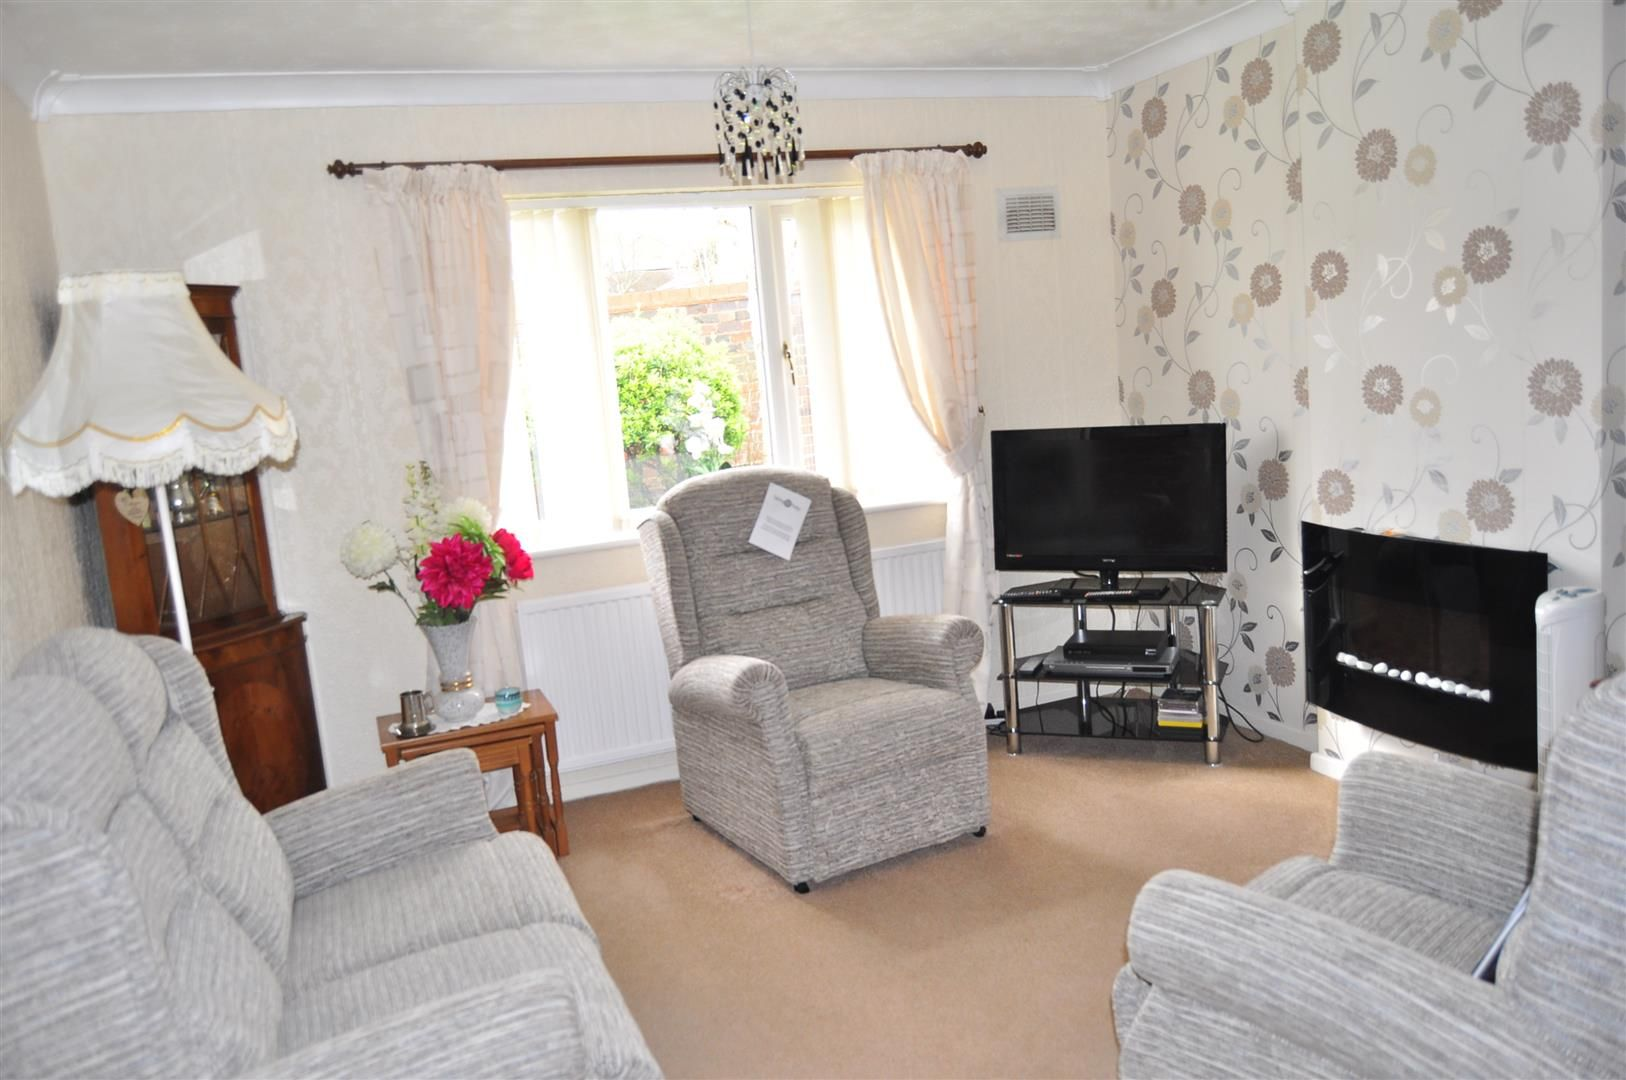 2 bed terraced-bungalow for sale 2